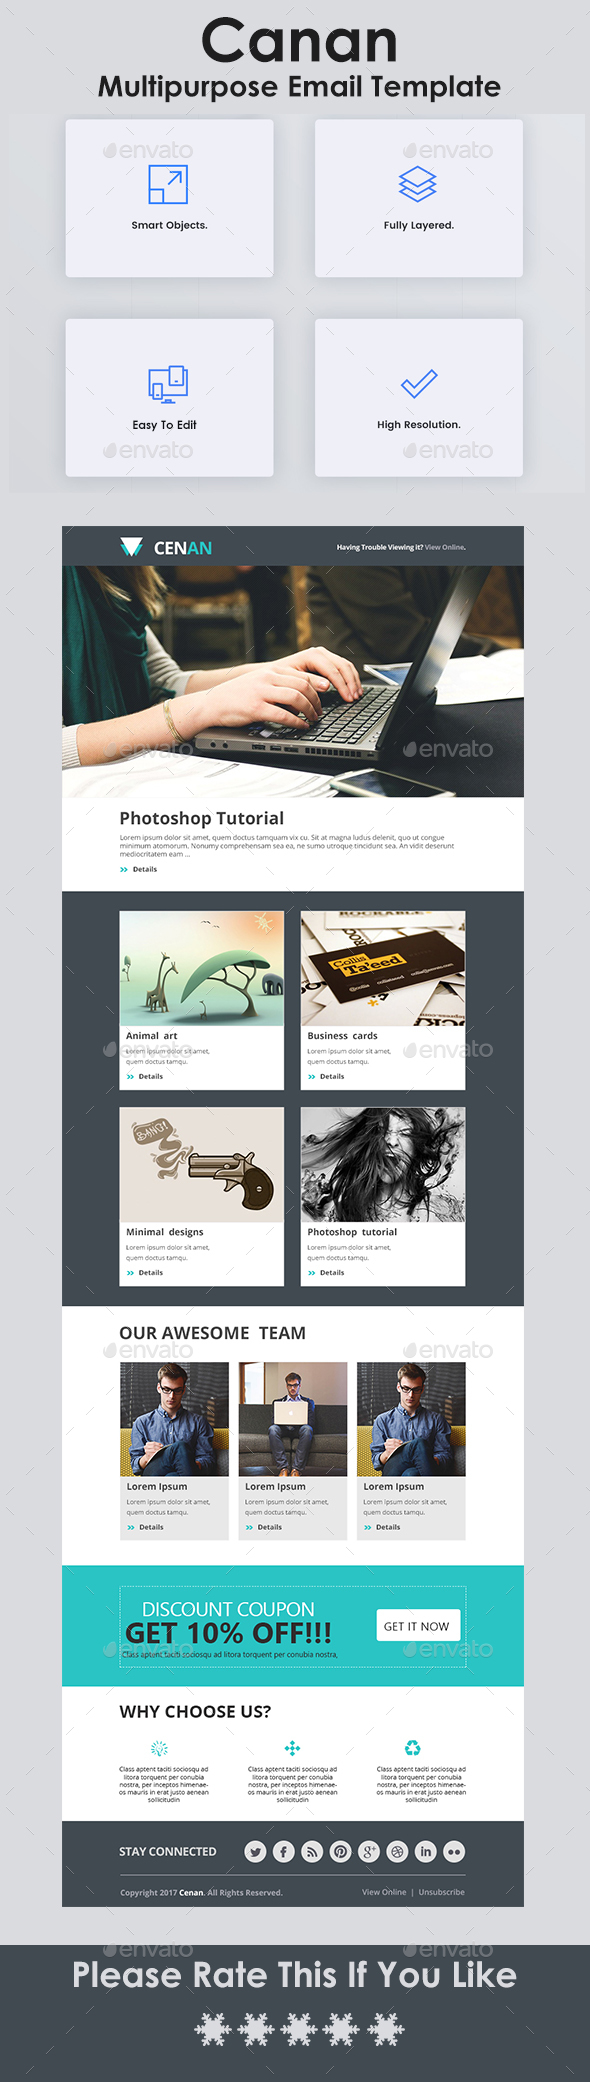 Multipurpose Email Template - E-newsletters Web Elements